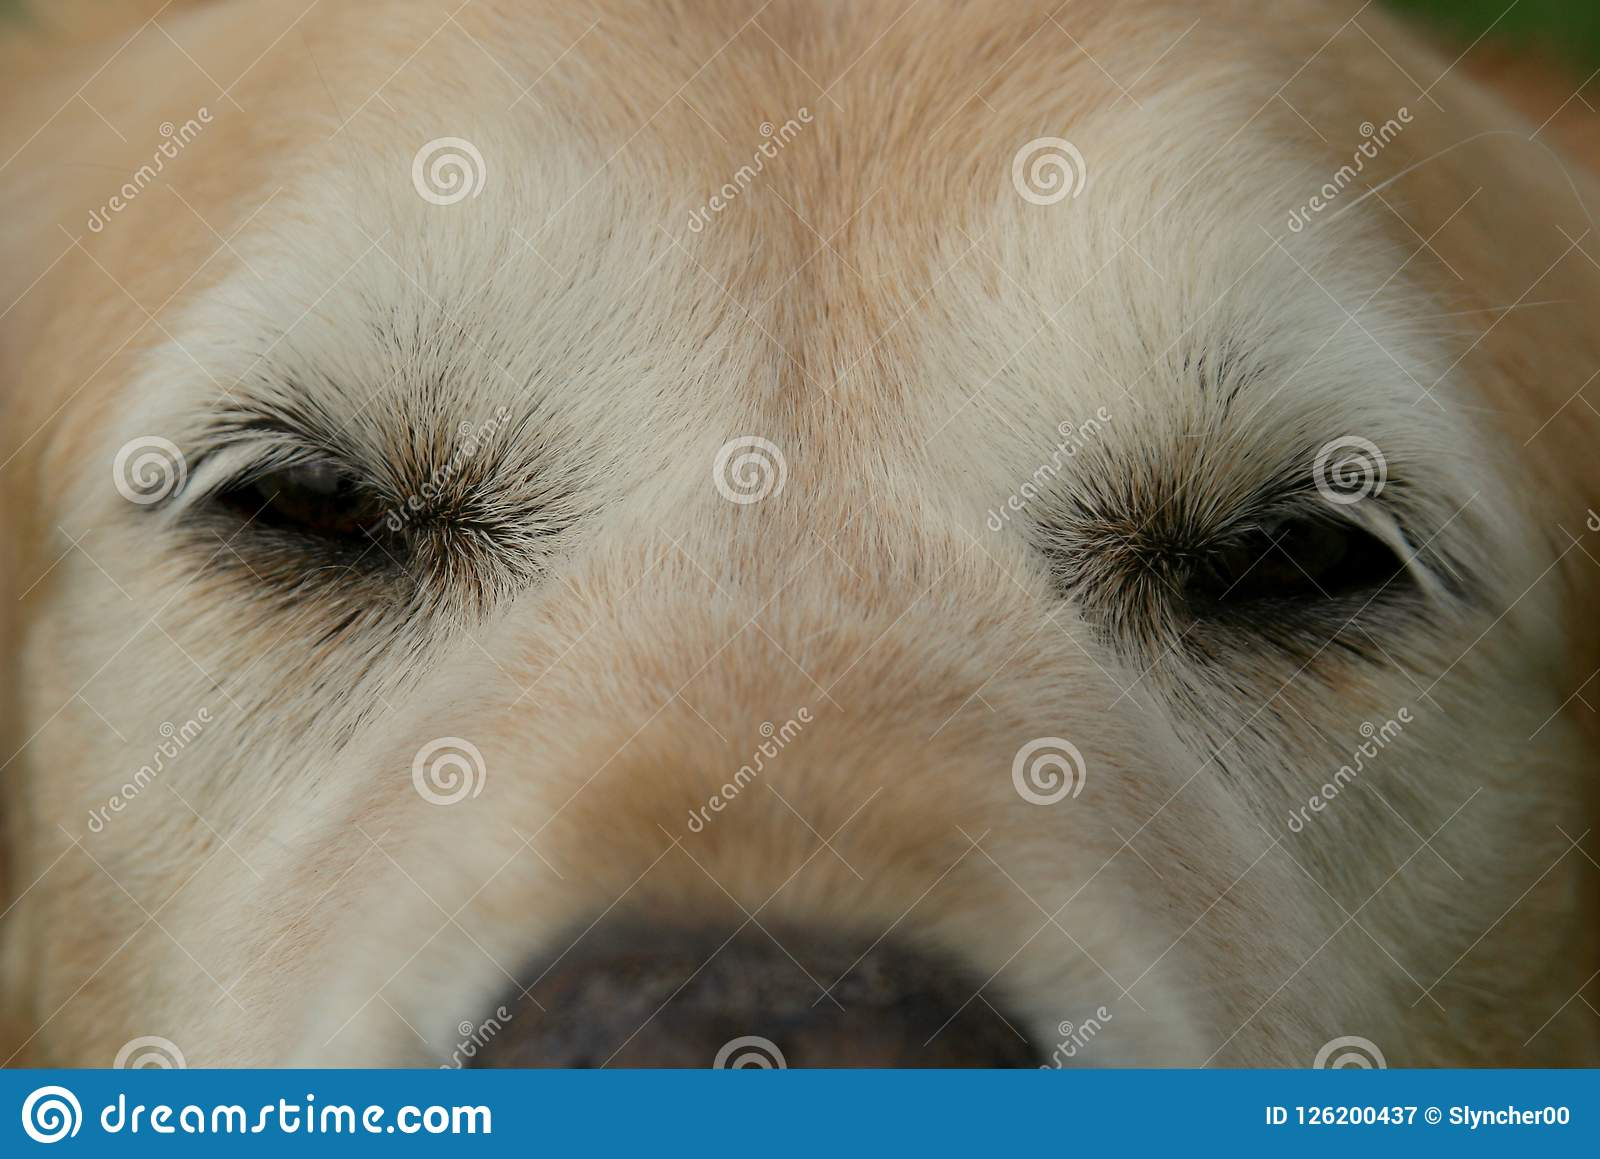 Close Up Of Old Golden Retriever Dog Eyes Stock Image Image Of